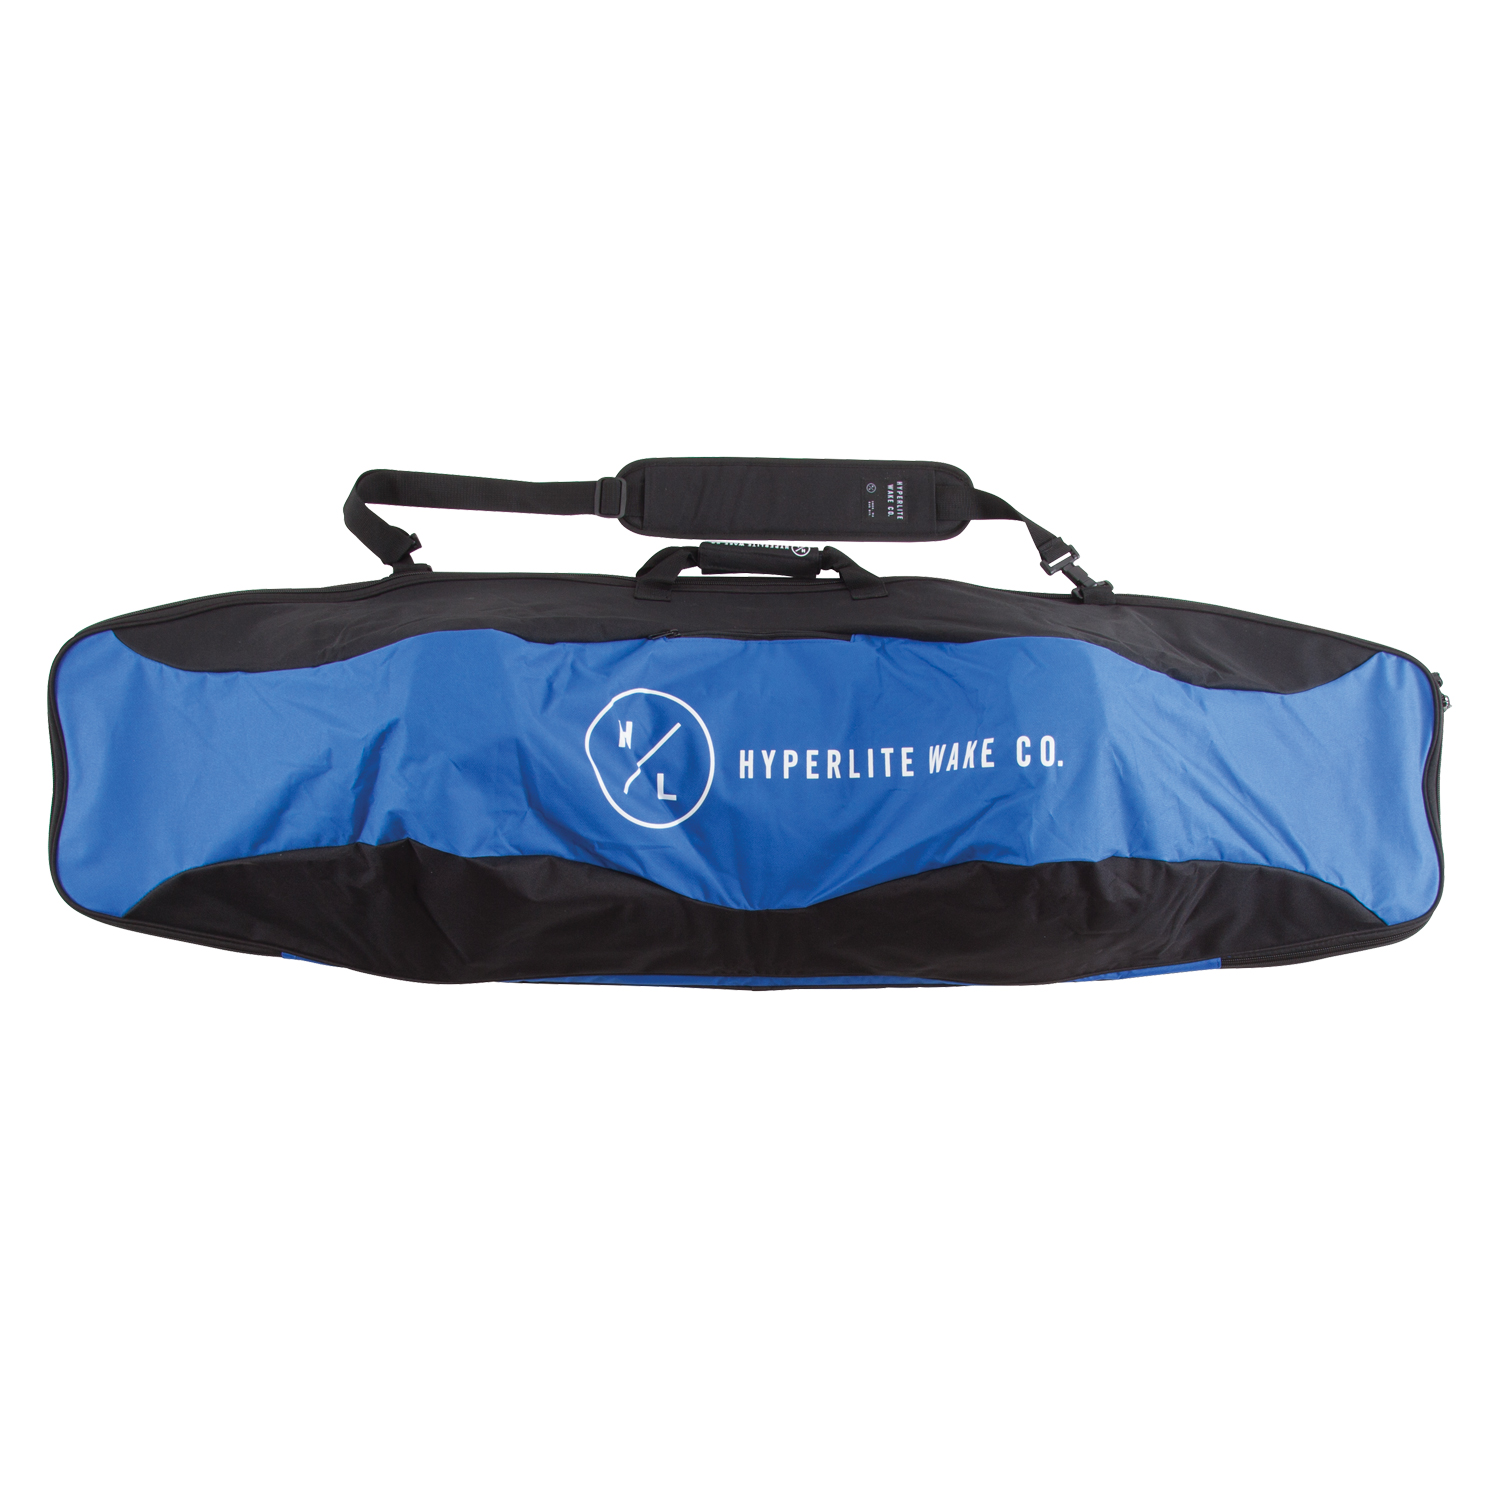 ESSENTIAL BOARDBAG HYPERLITE 2019